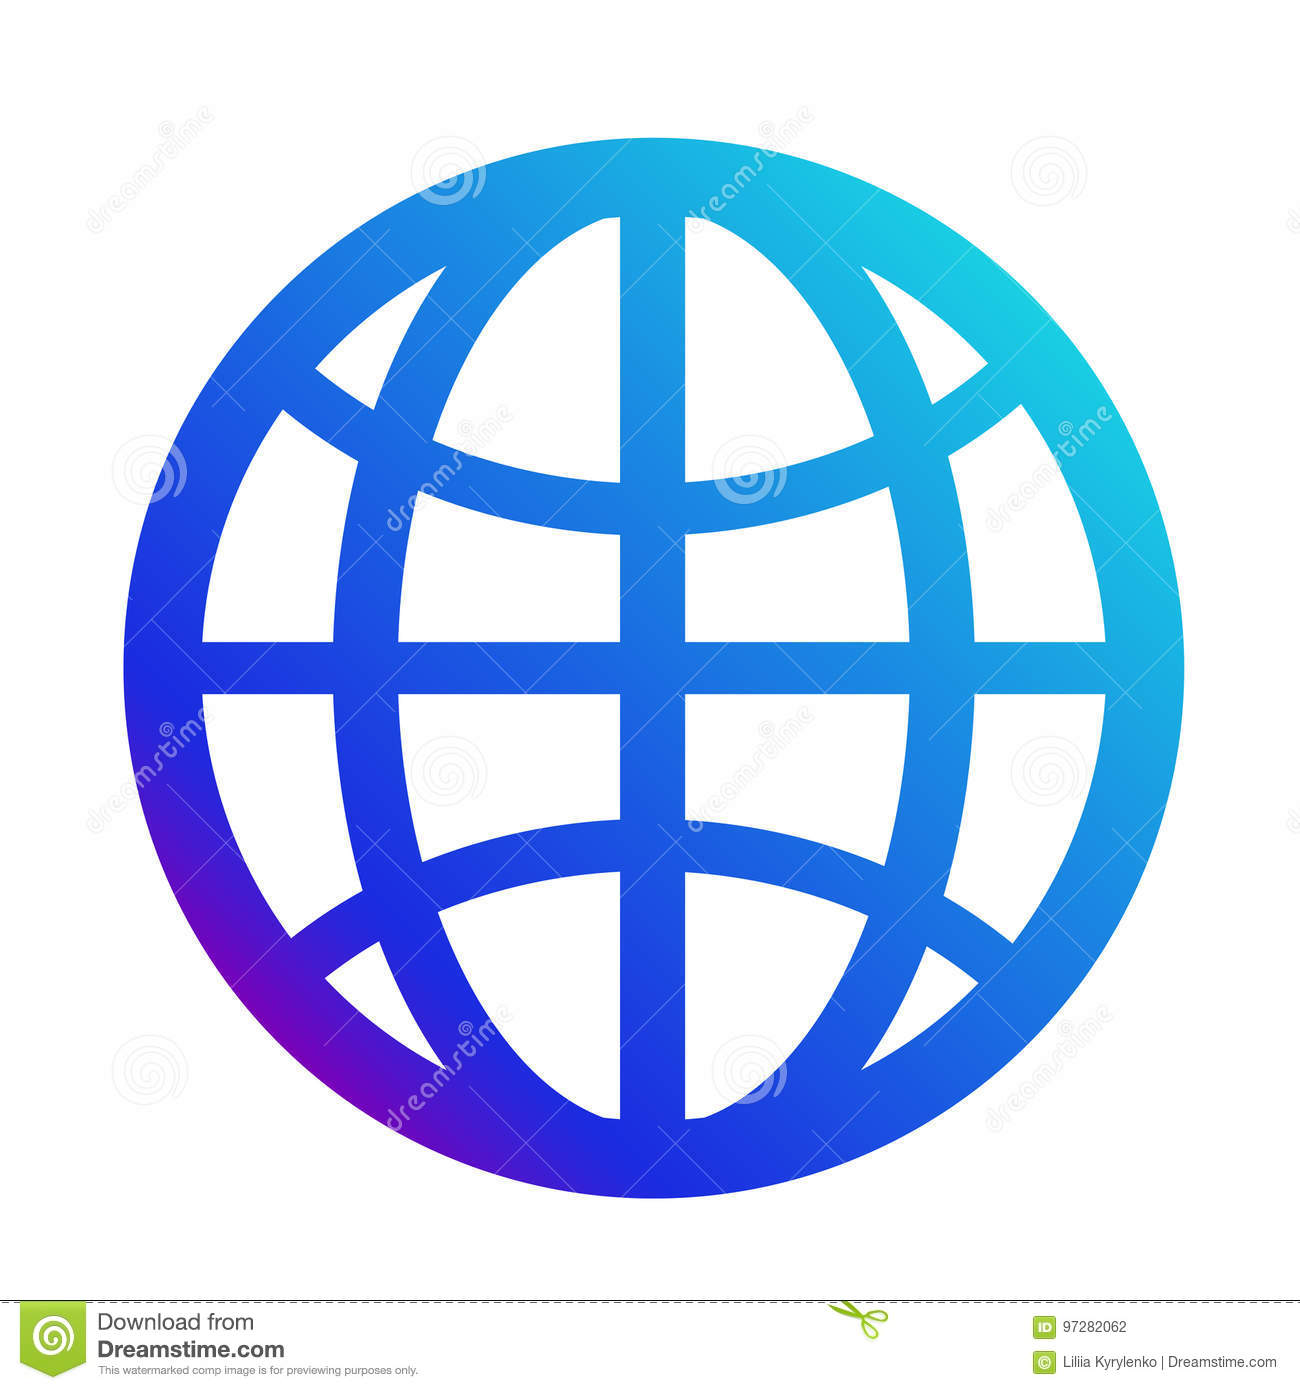 Icon internet symbol of the website globe sign stock for Logo sito internet